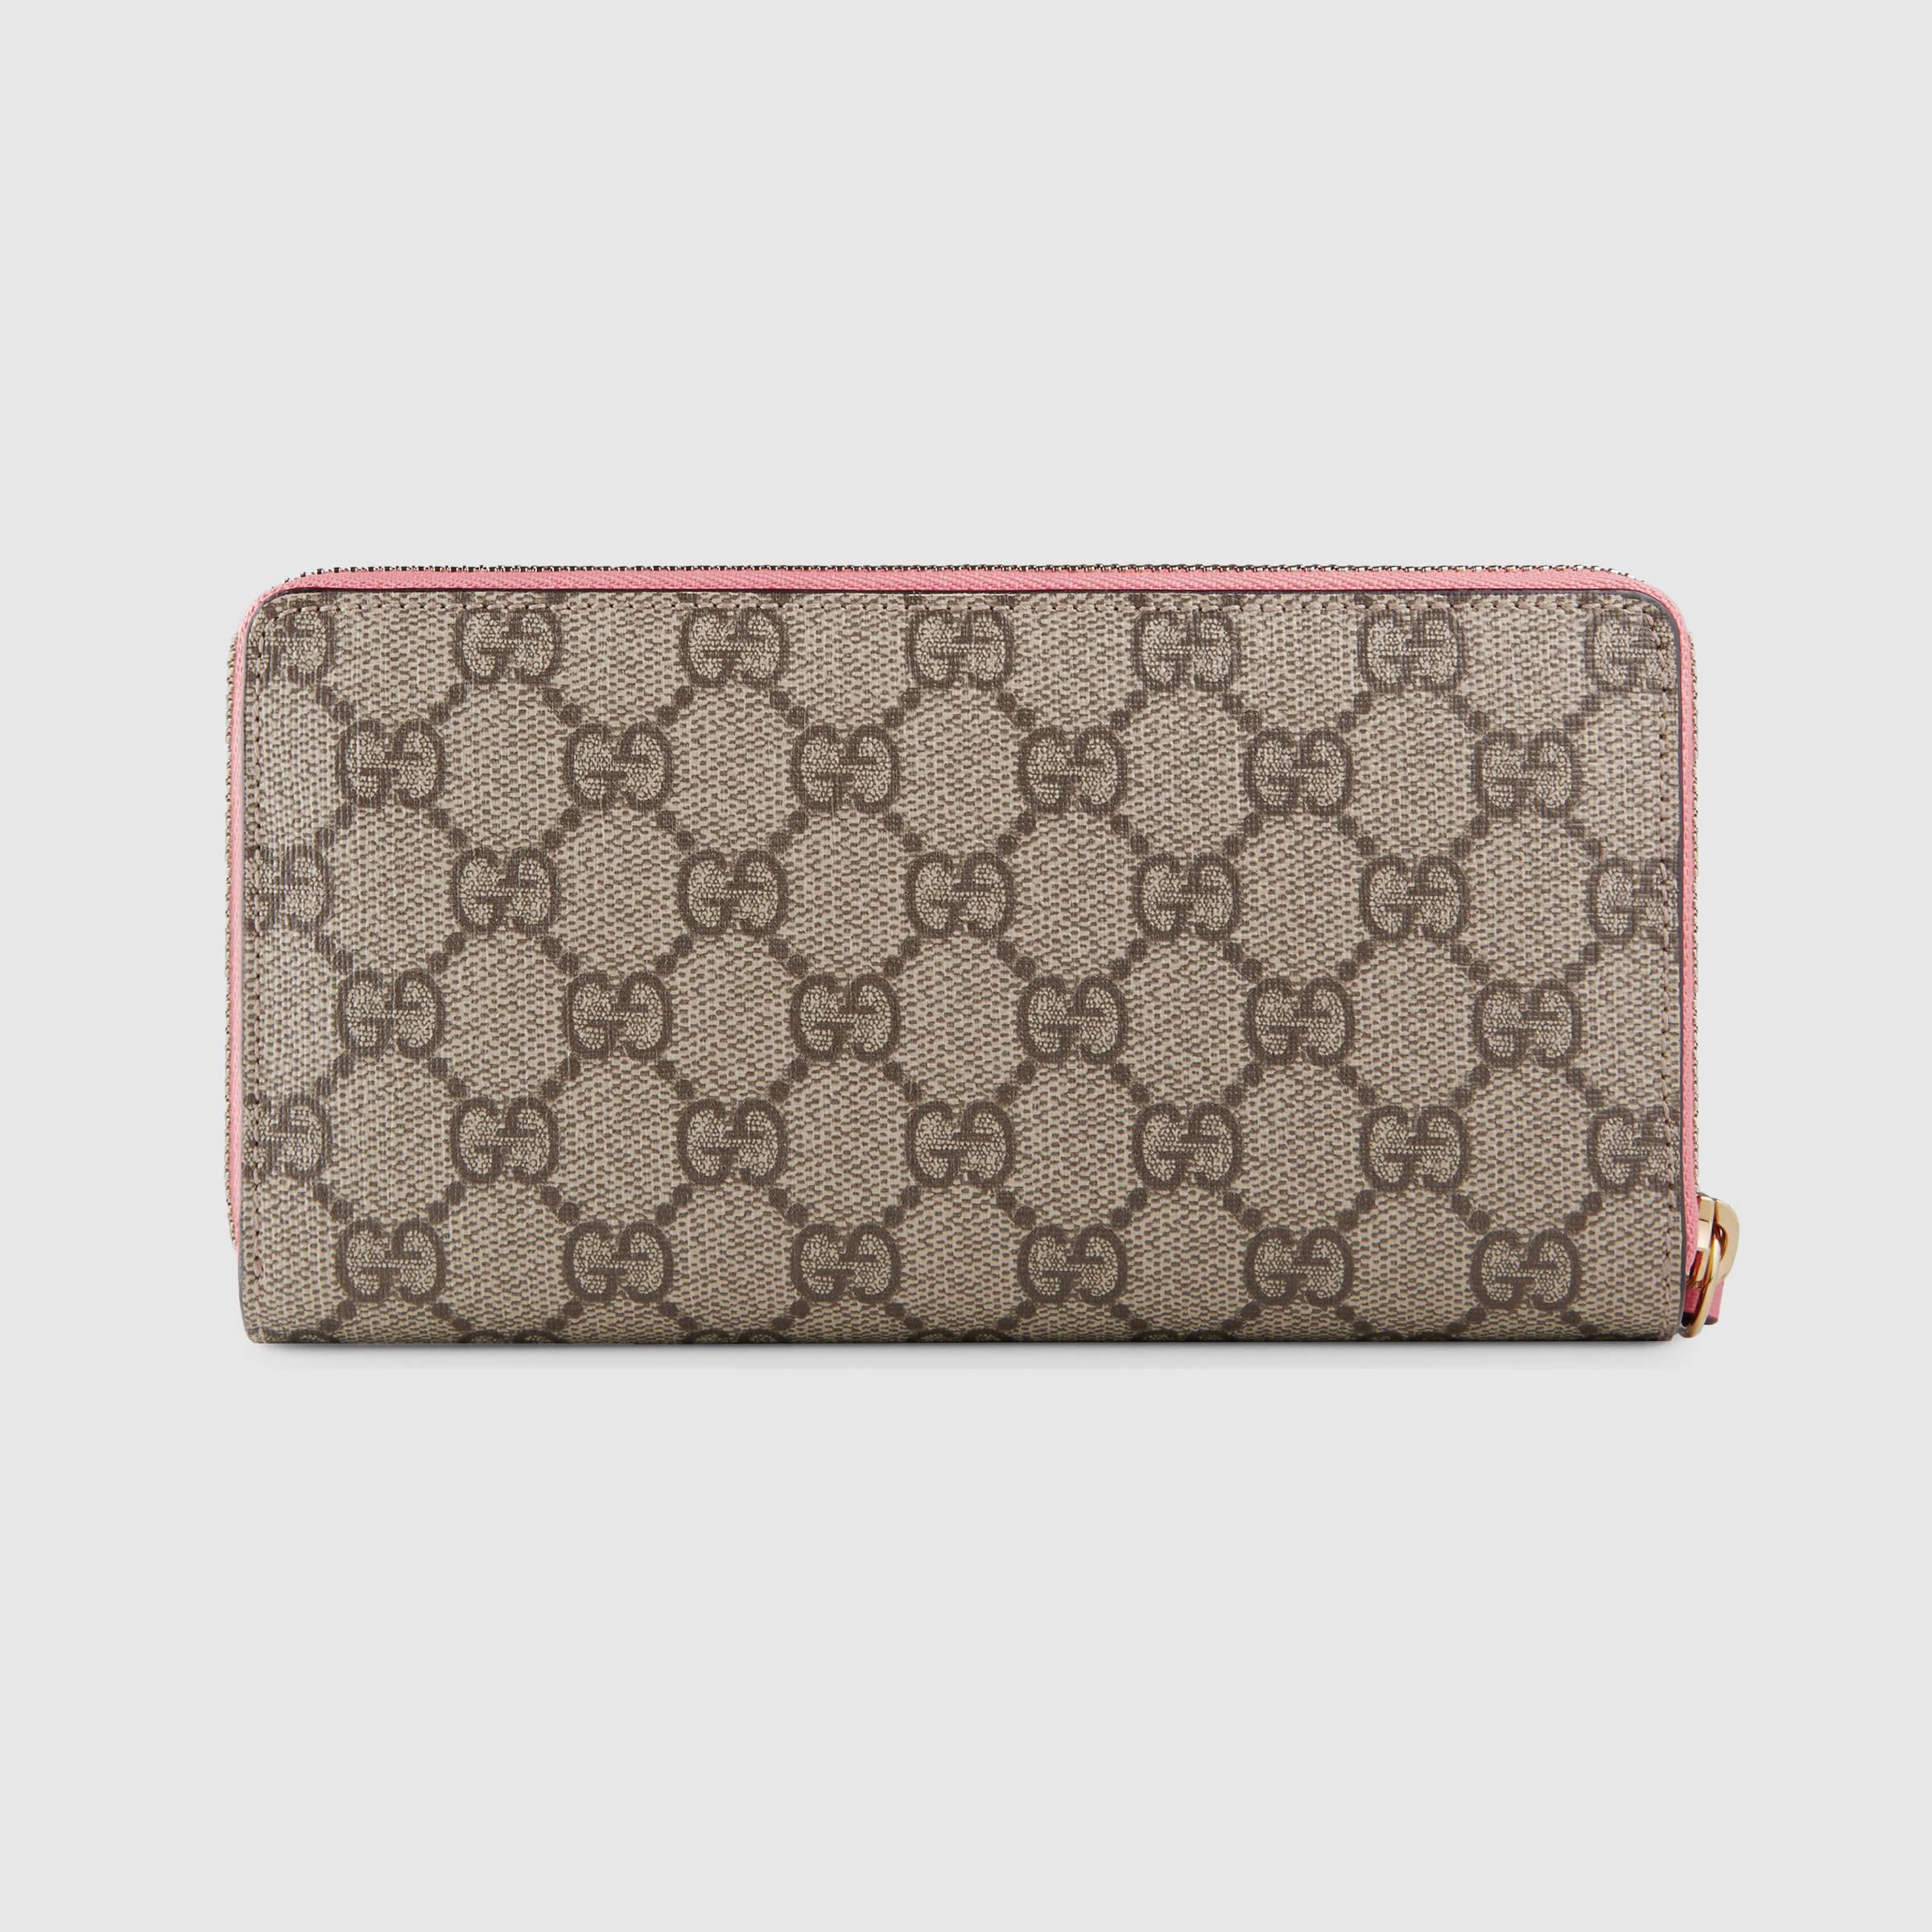 b480cffcff2 Lyst - Gucci Zip Around Wallet With Embroidered Face in Pink